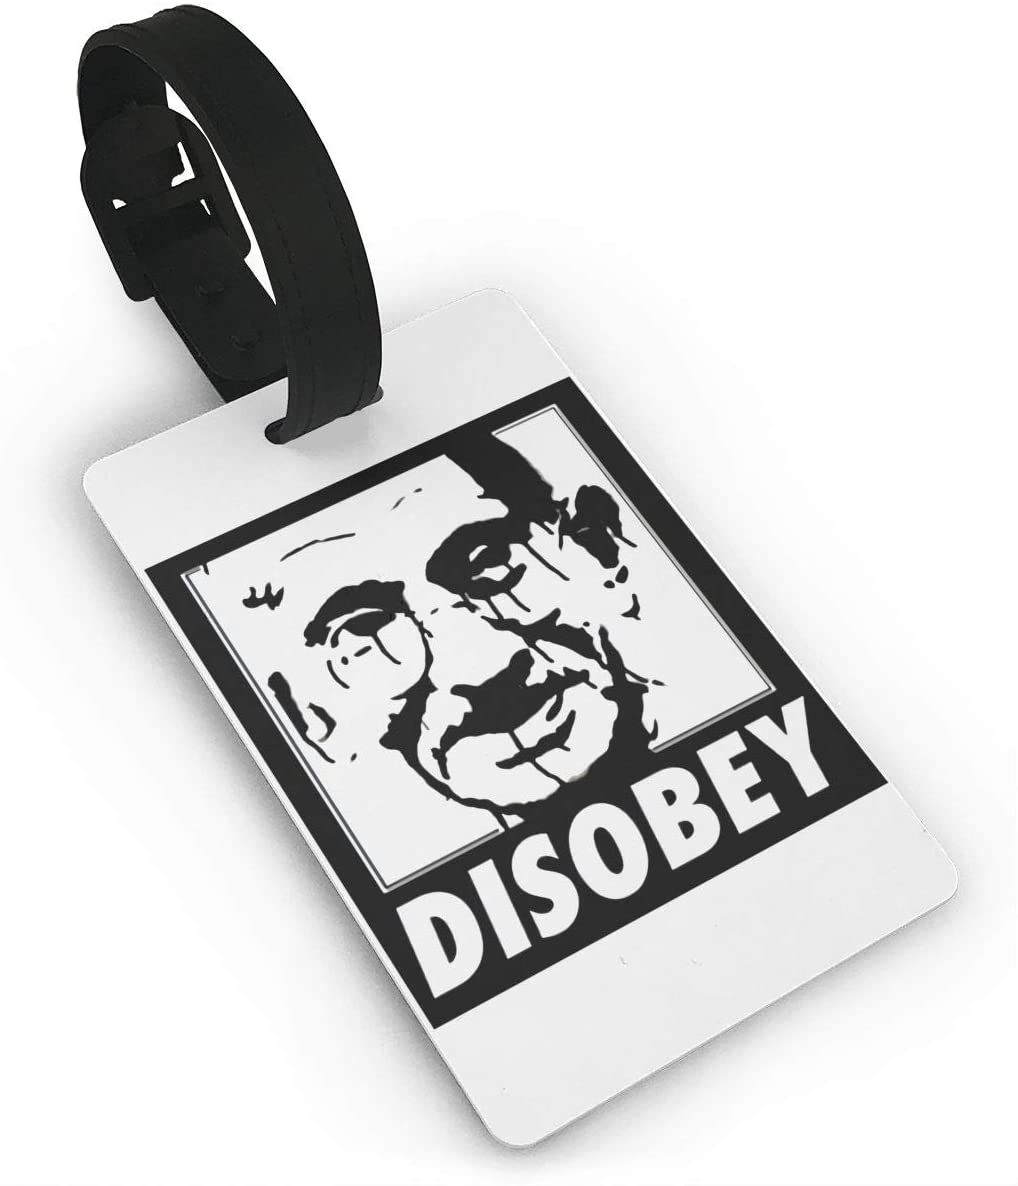 Disobey Gandhi Revolution Power To The People Luggage Tag